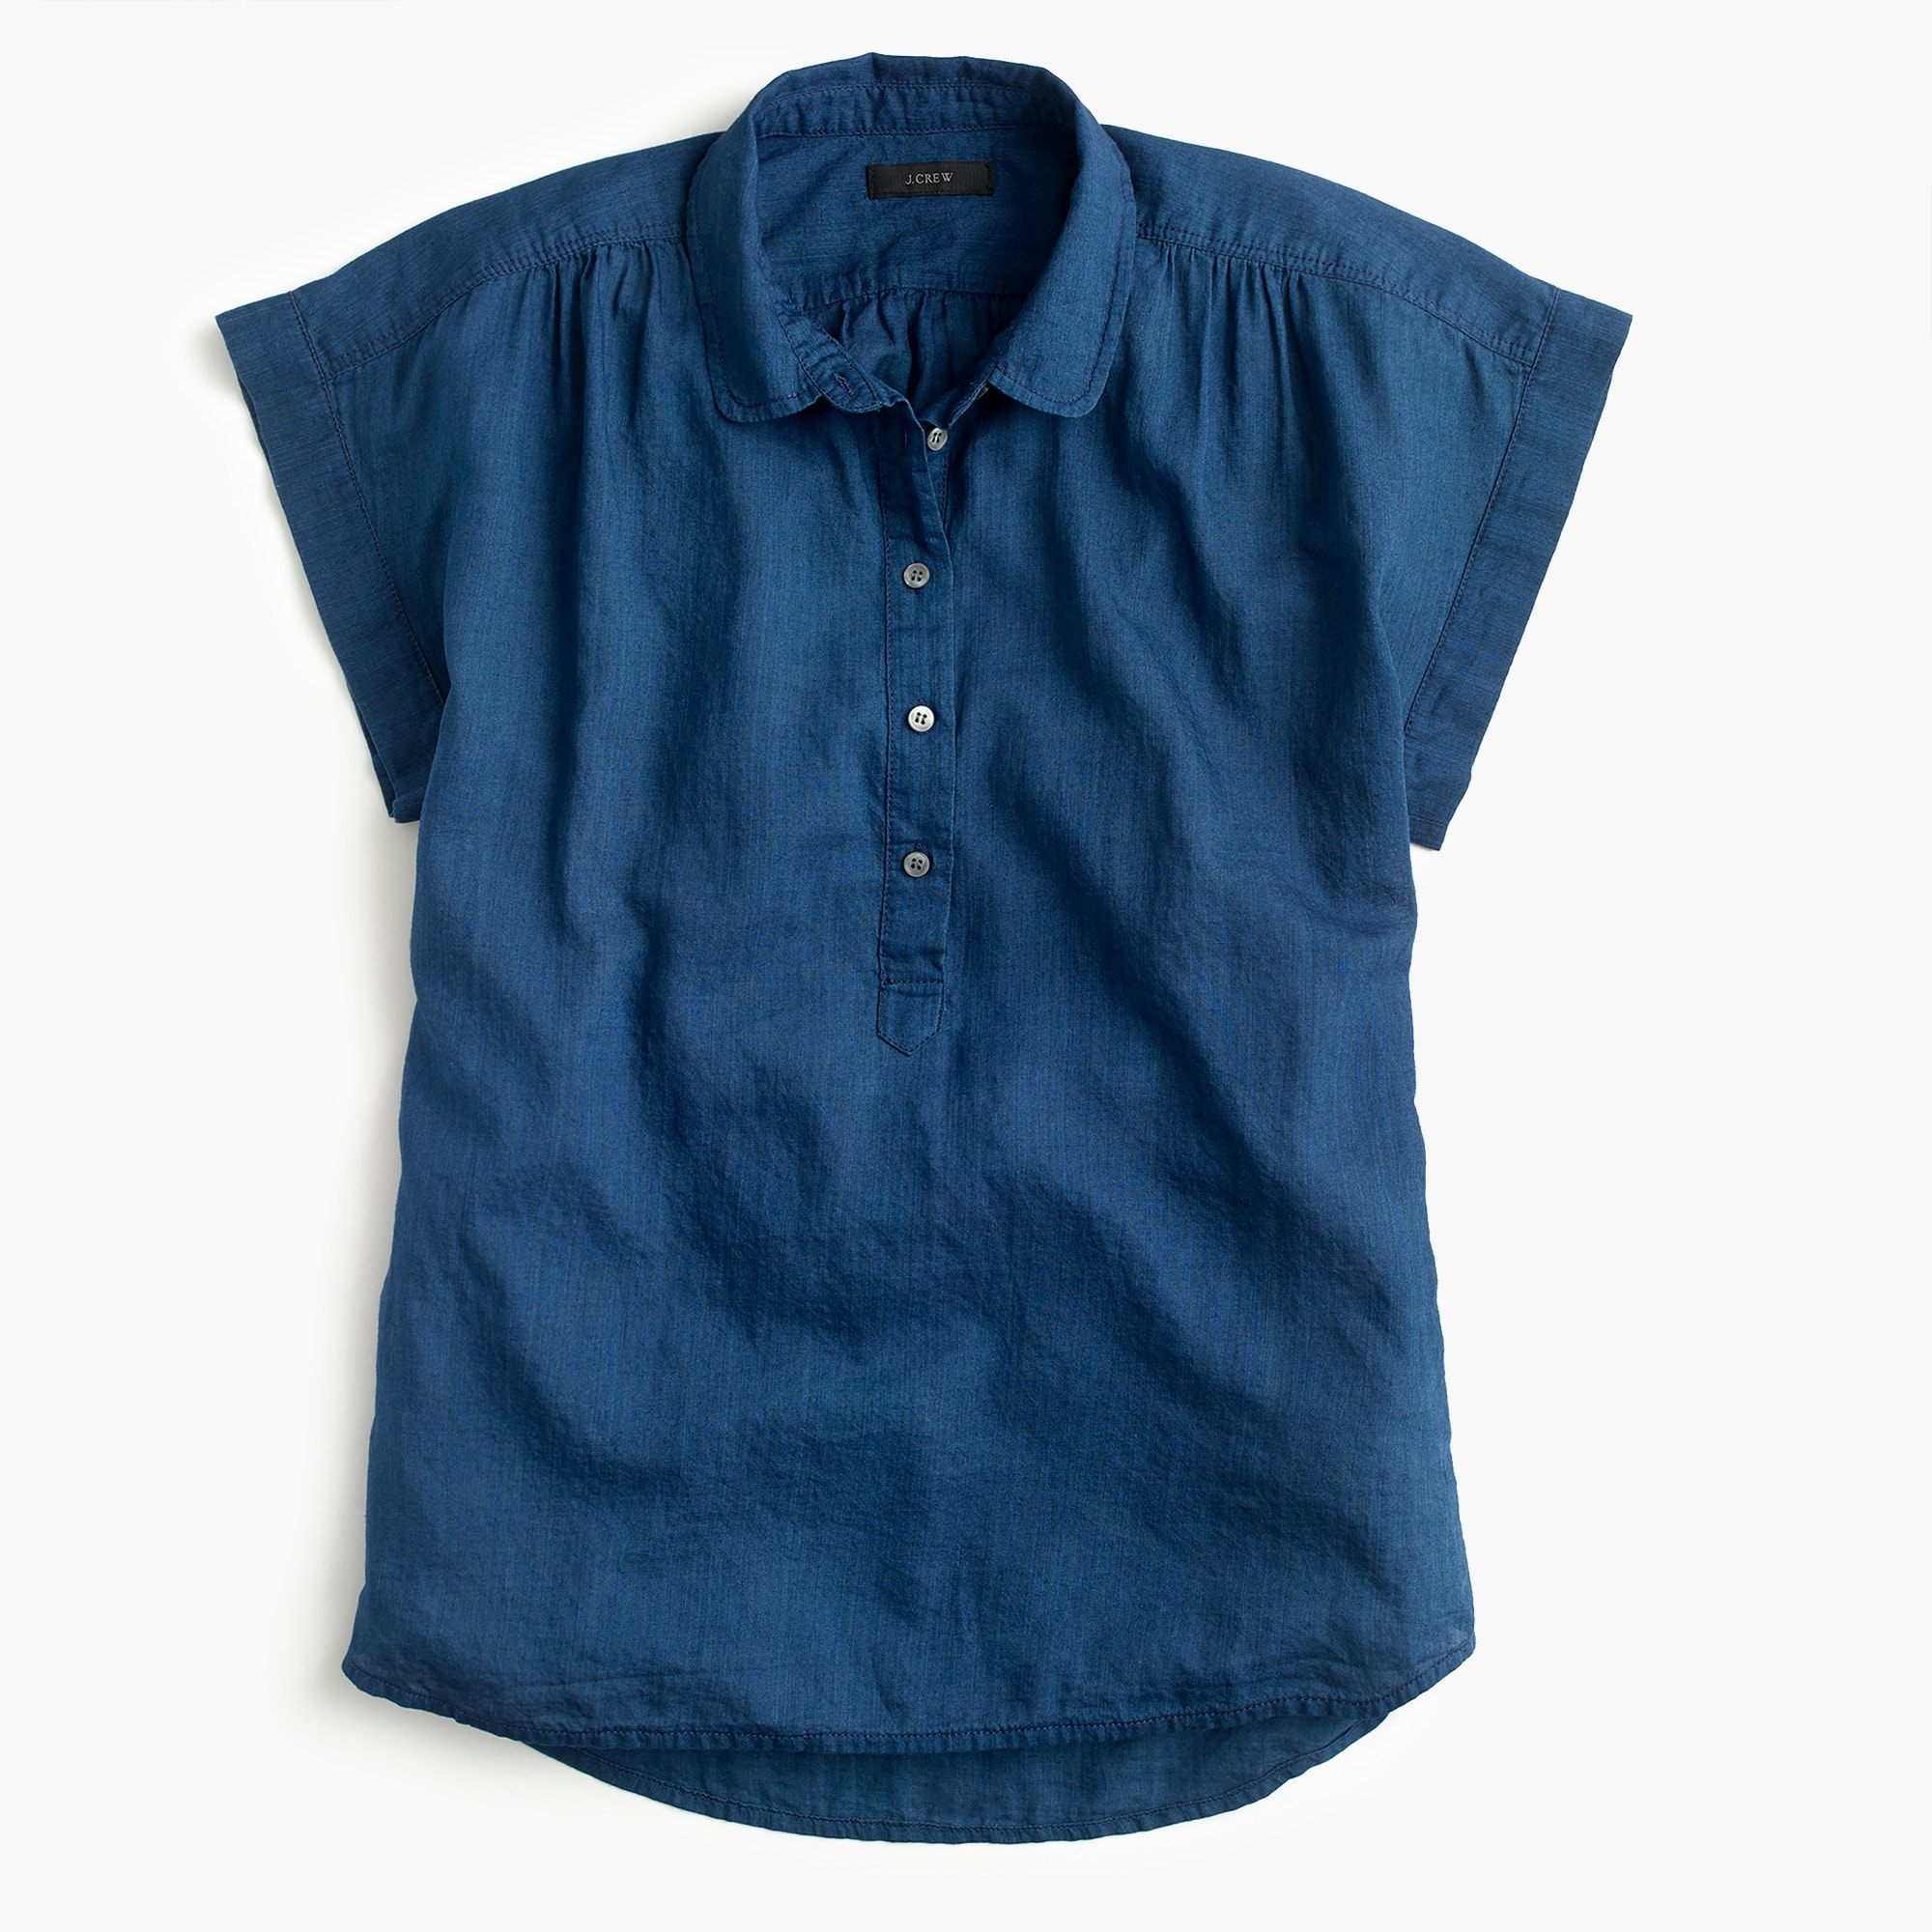 Image 1 for Petite collared popover shirt in indigo gauze